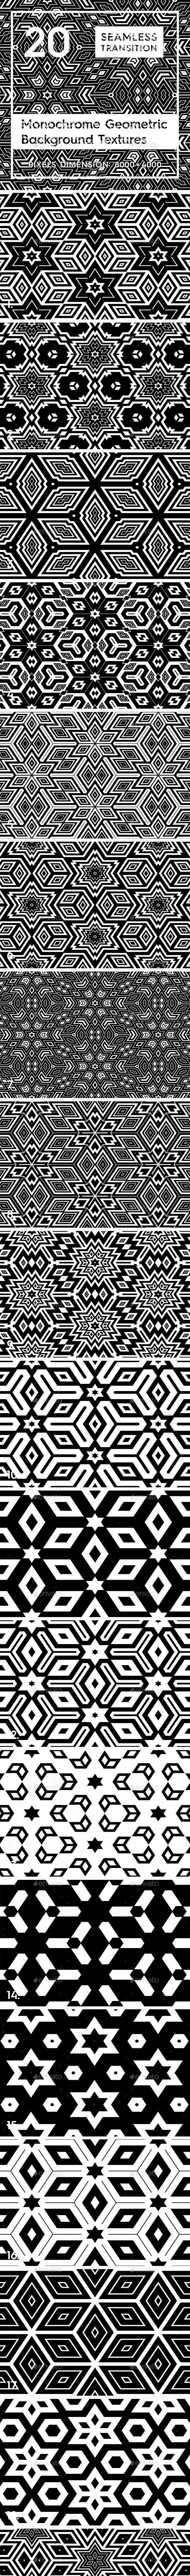 20 Monochrome Geometric Backgrounds - 3DOcean Item for Sale